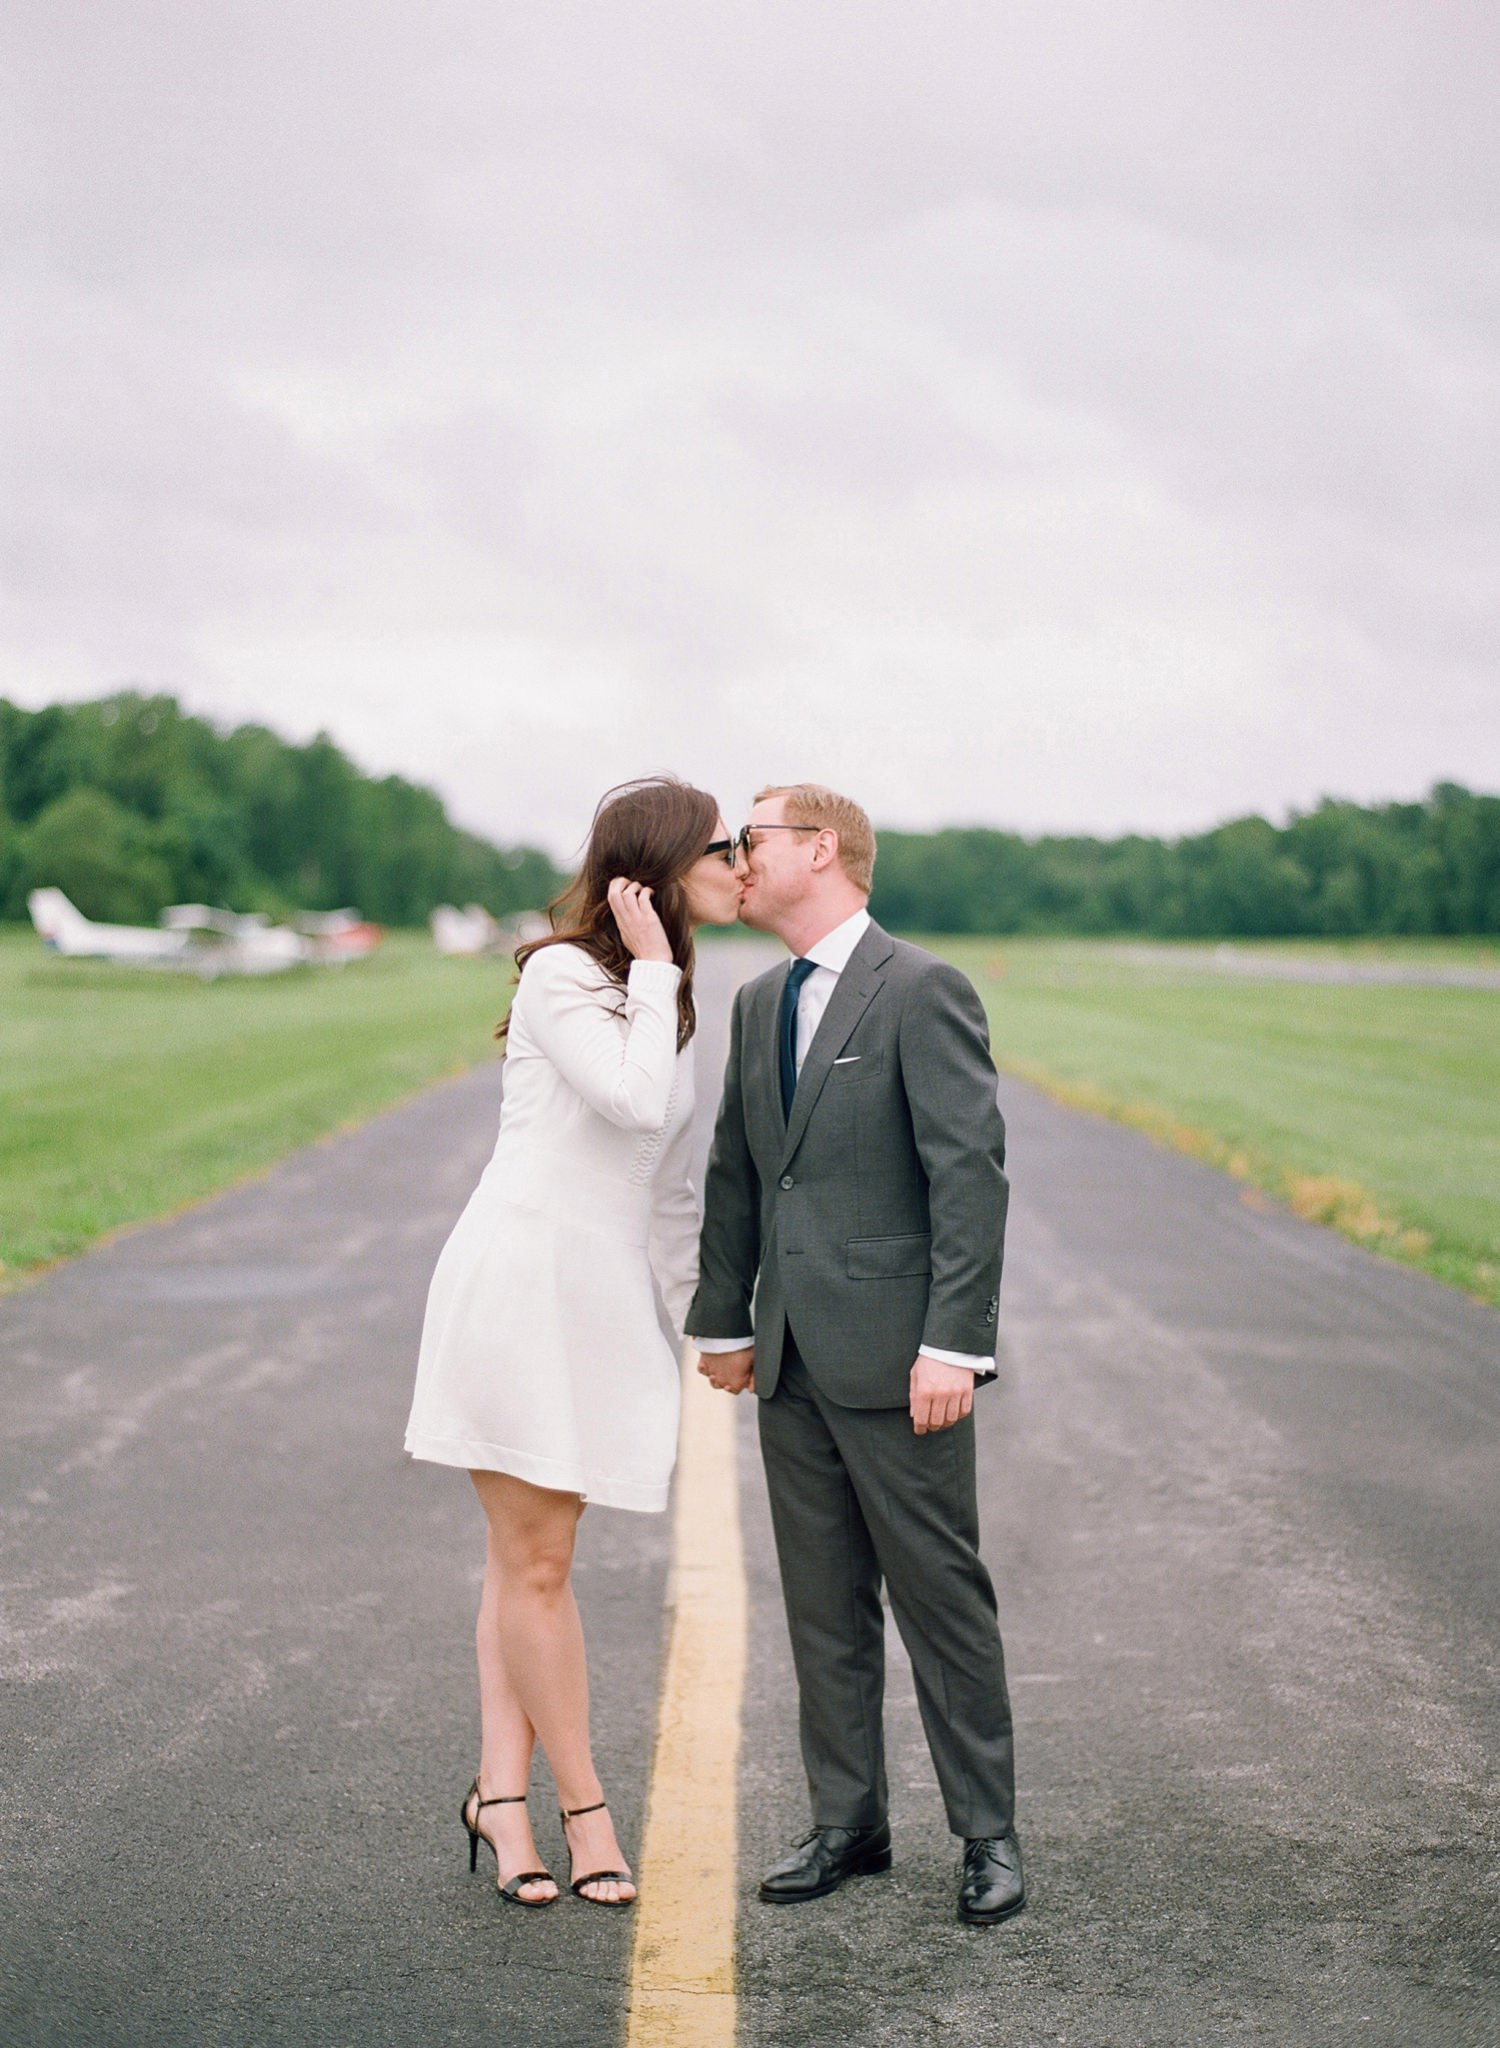 romantic airfield engagement session